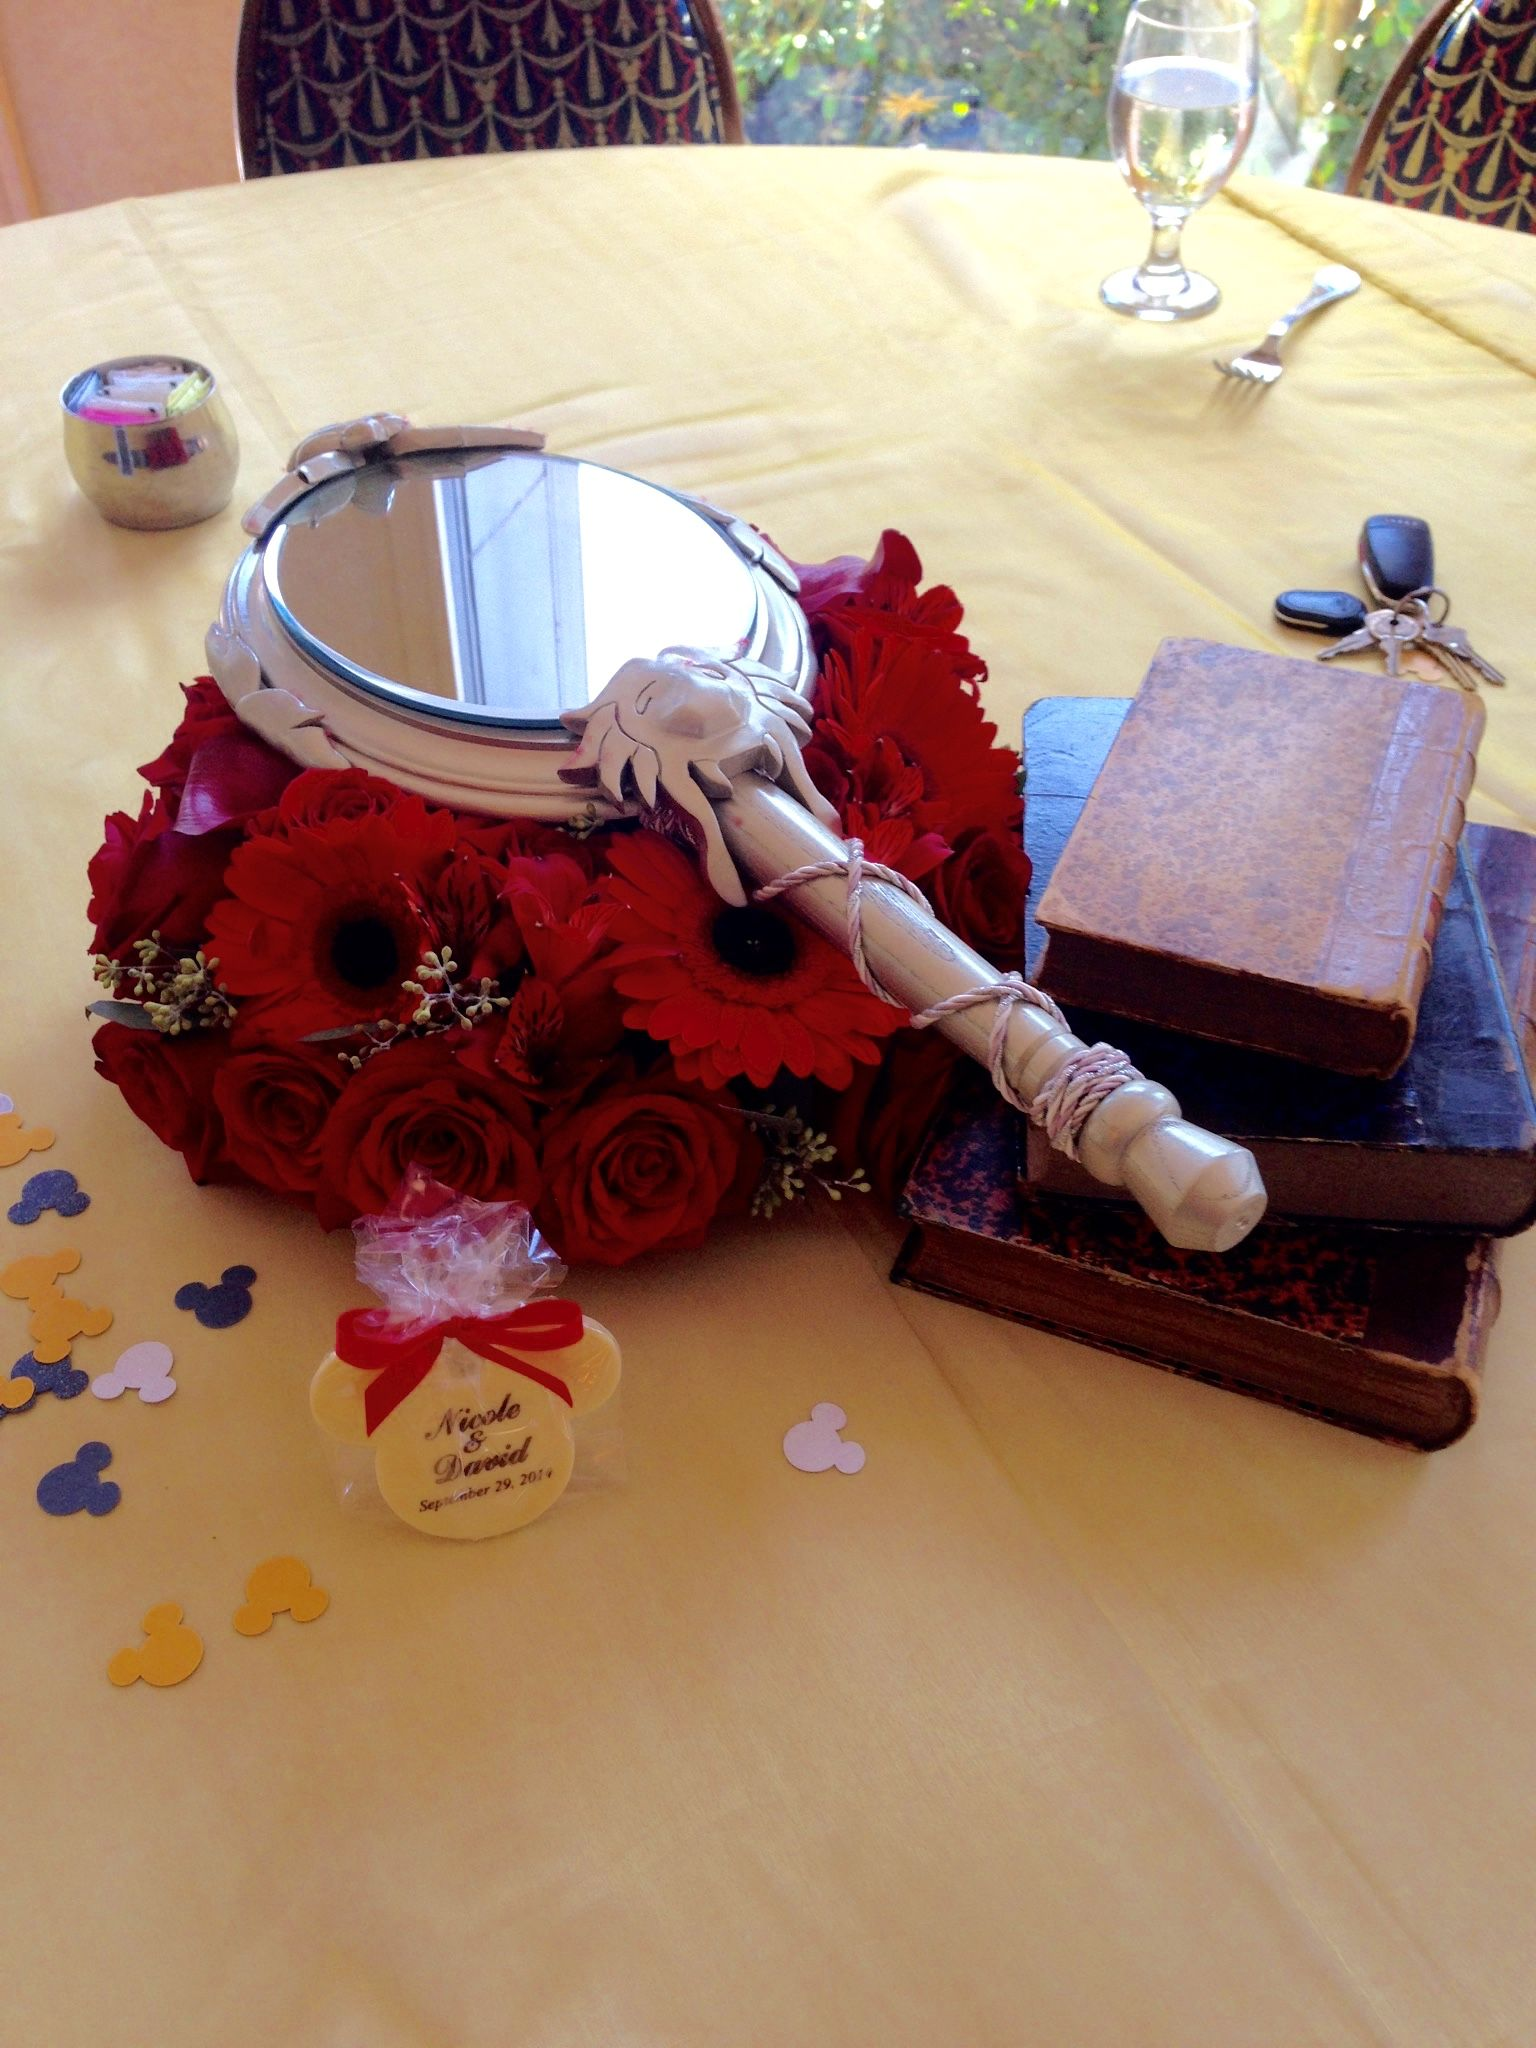 Disney Beauty And The Beast Enchanted Mirror And Books Wedding